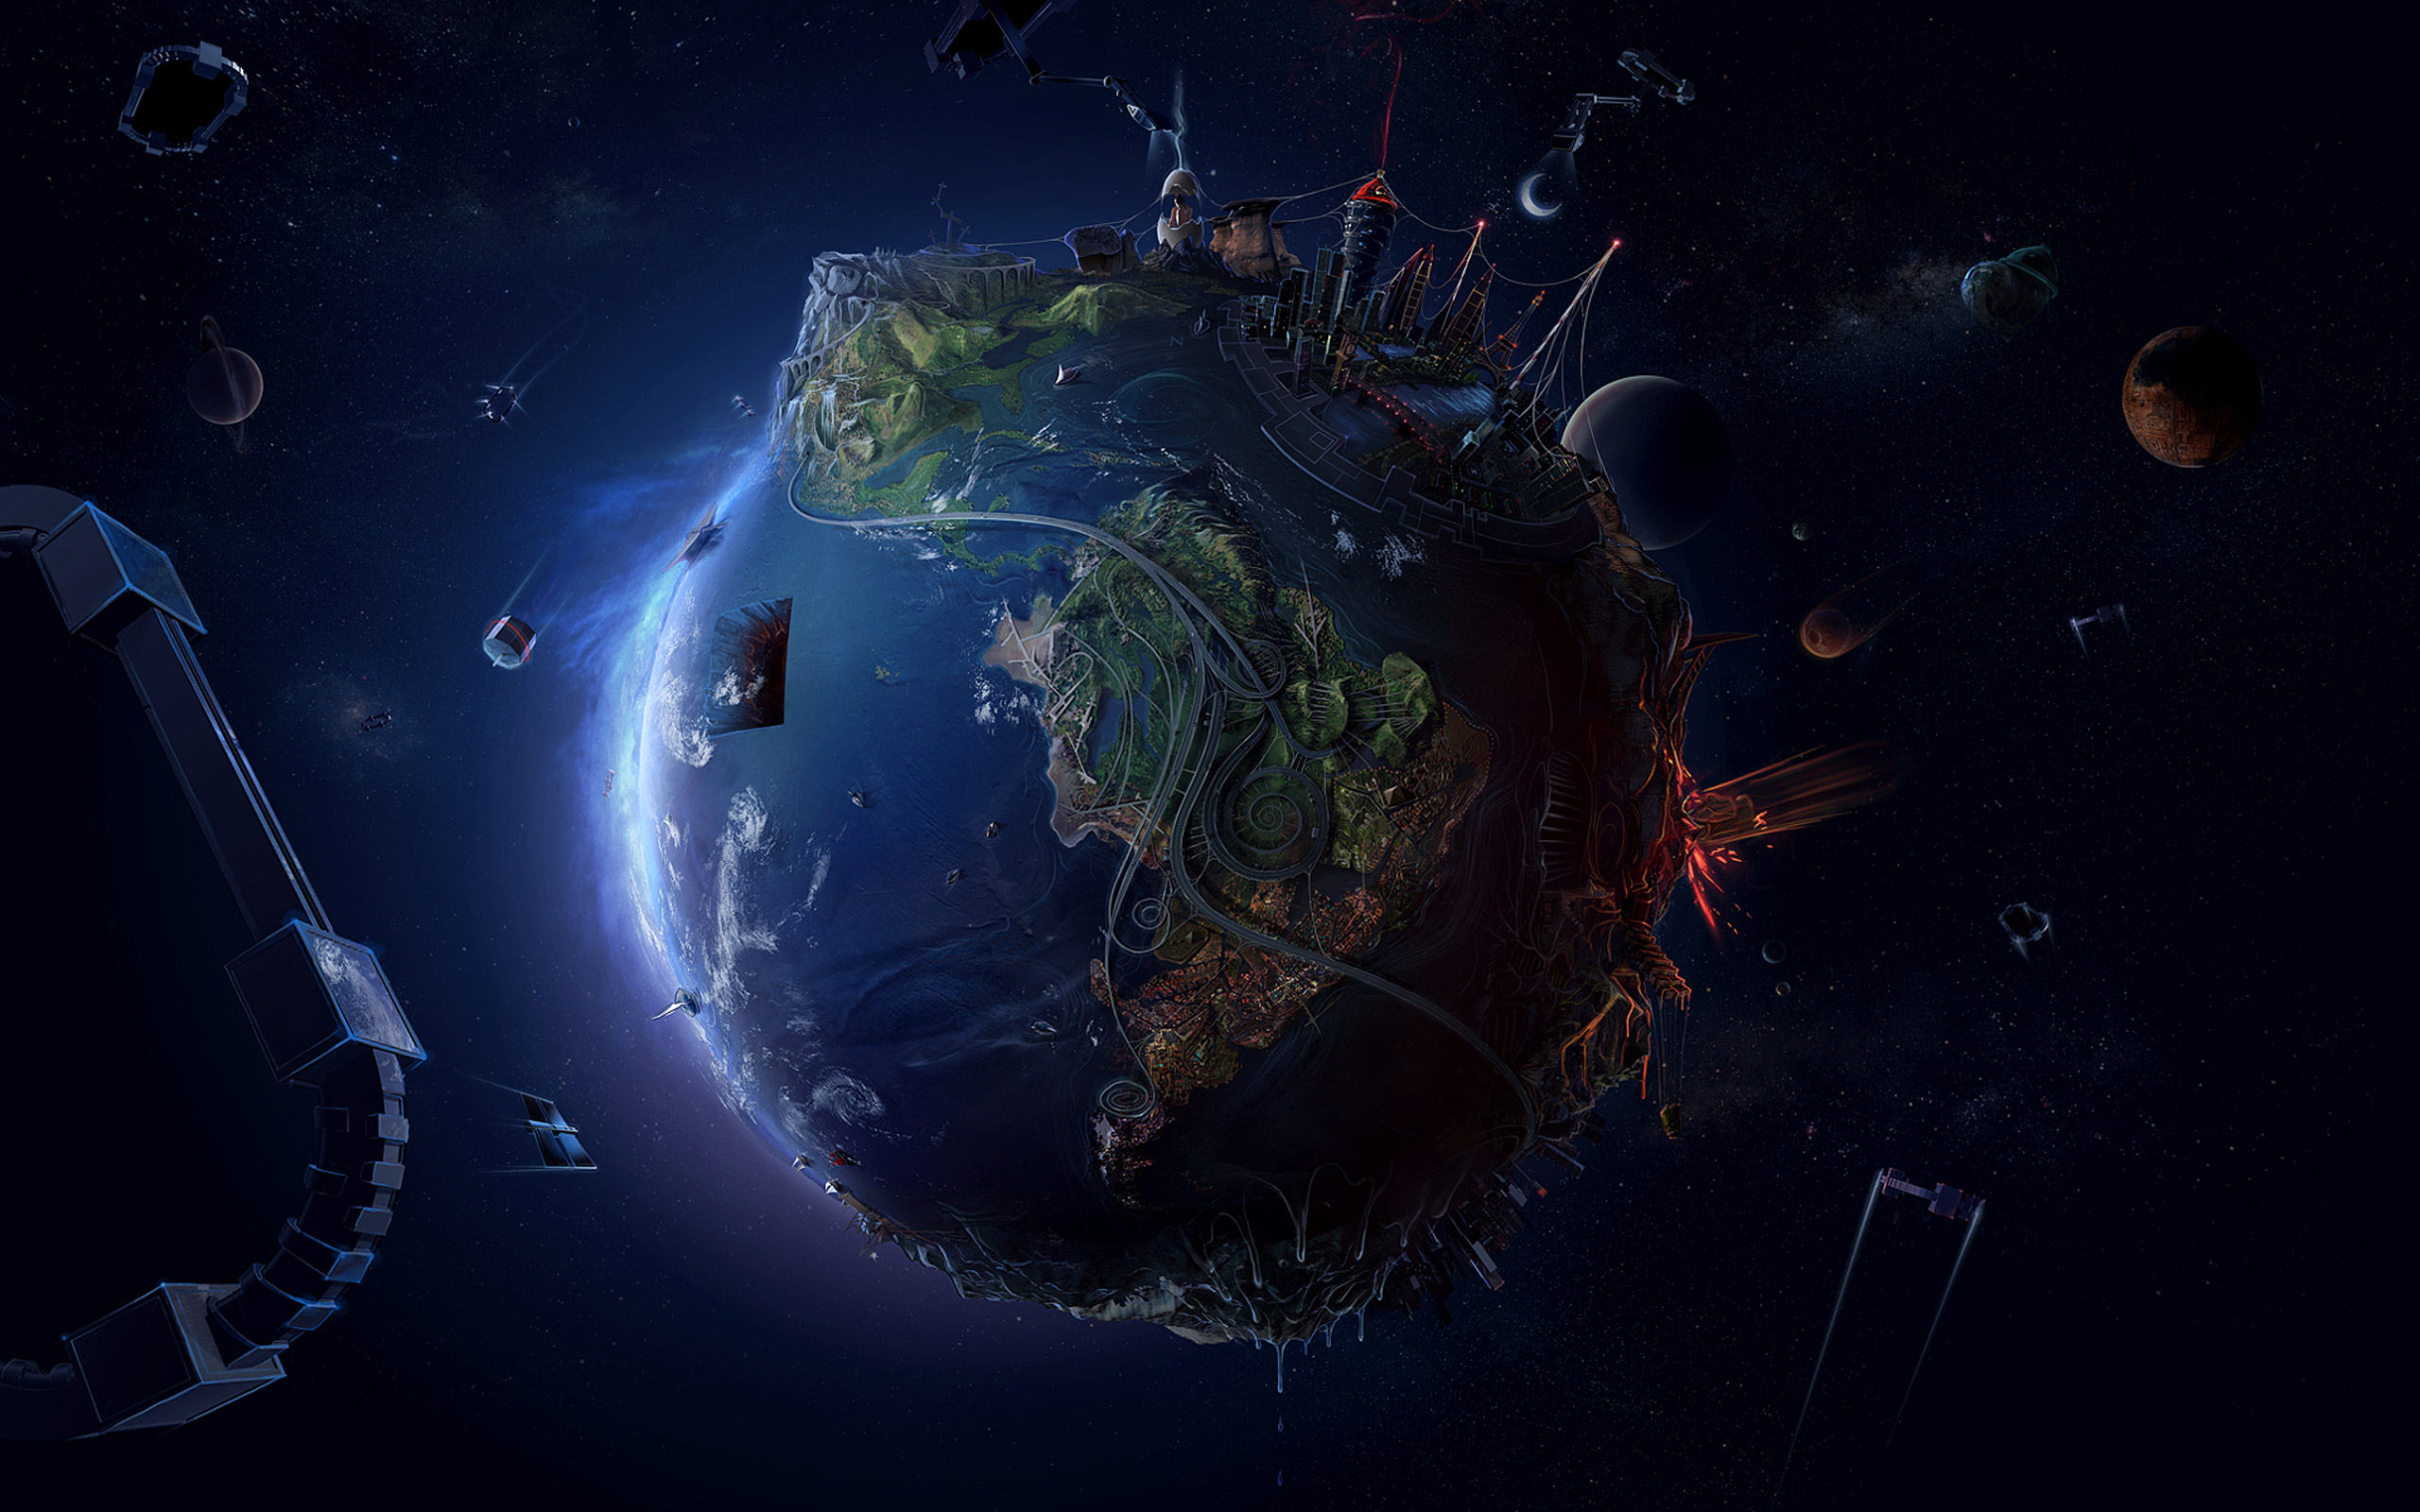 Video Game Wallpaper Border Planets Wallpaper Border Video